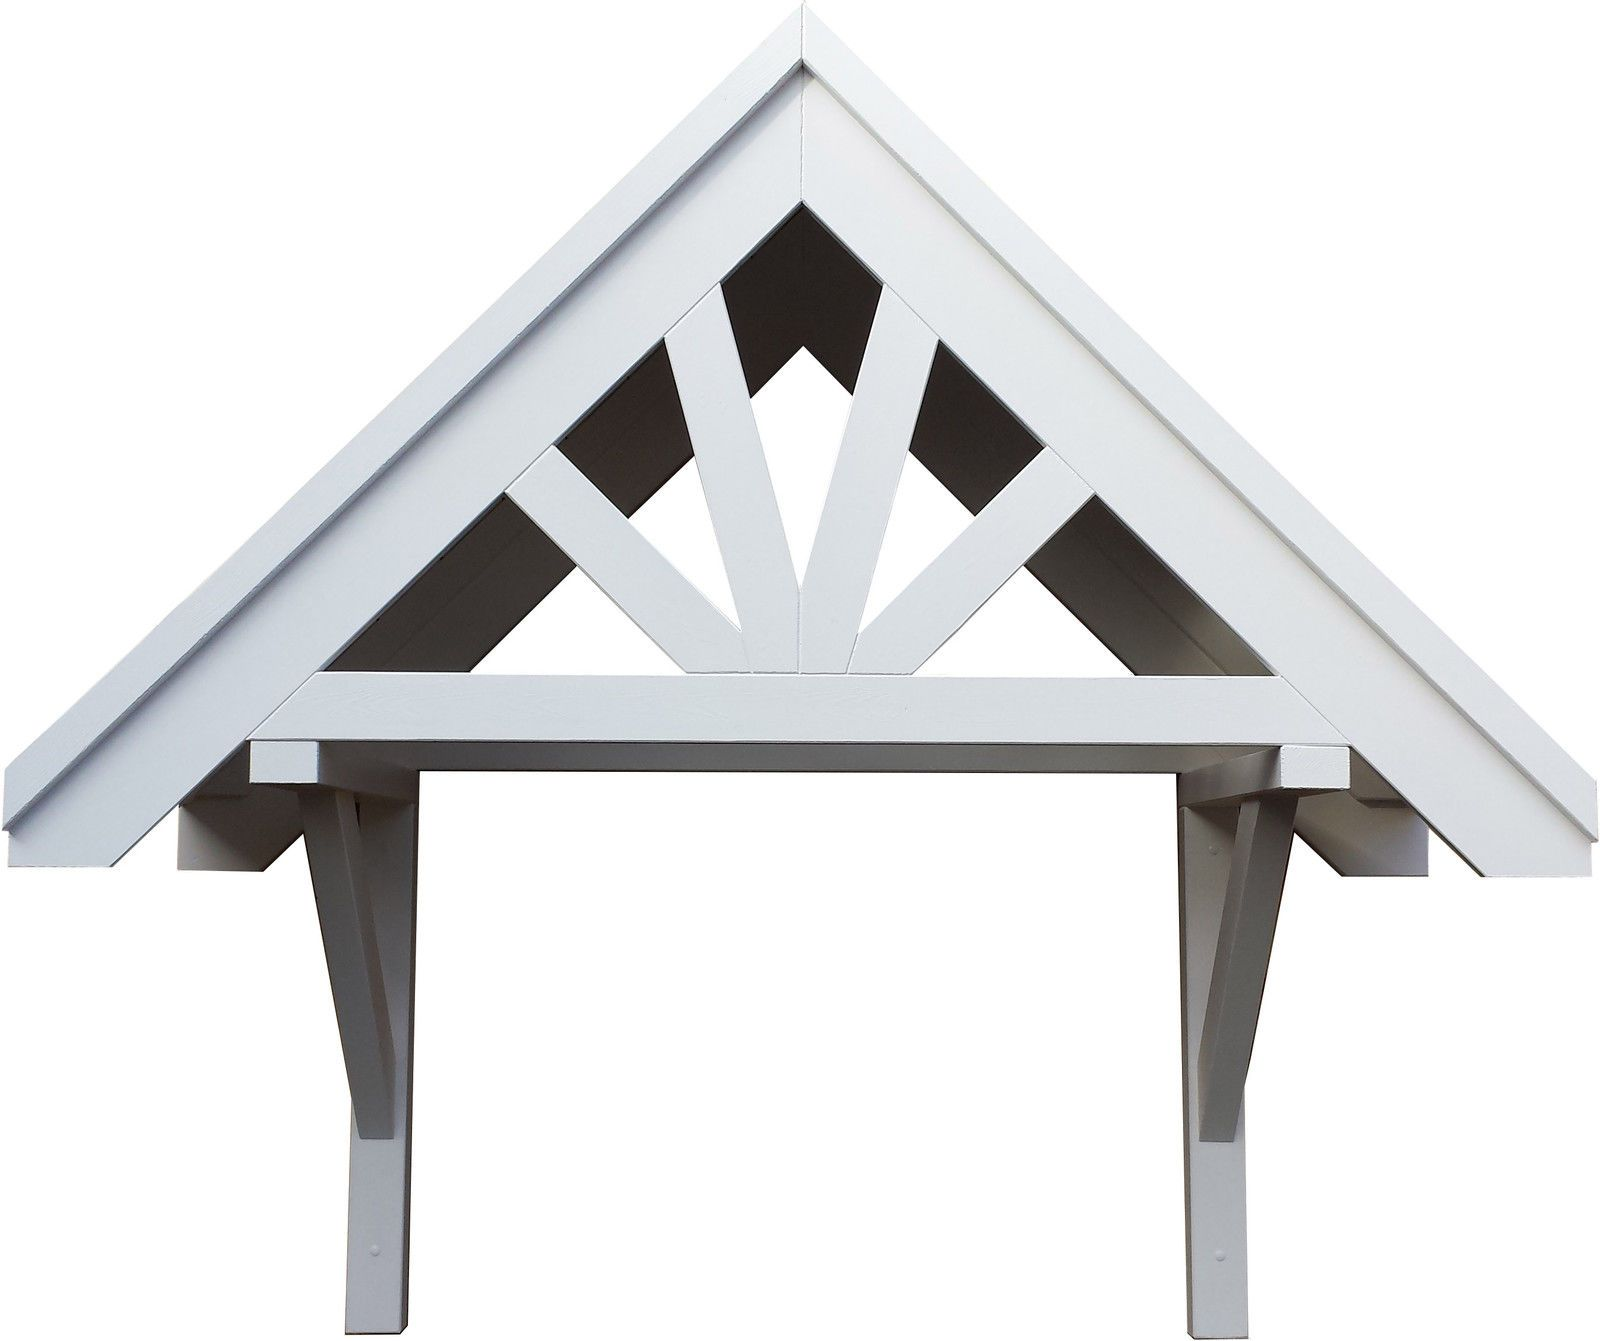 Front door Wooden Canopy Roof Porch - Bespoke Timber Awning - Made to measure | eBay  sc 1 st  Pinterest & Front door Wooden Canopy Roof Porch - Bespoke Timber Awning - Made ...